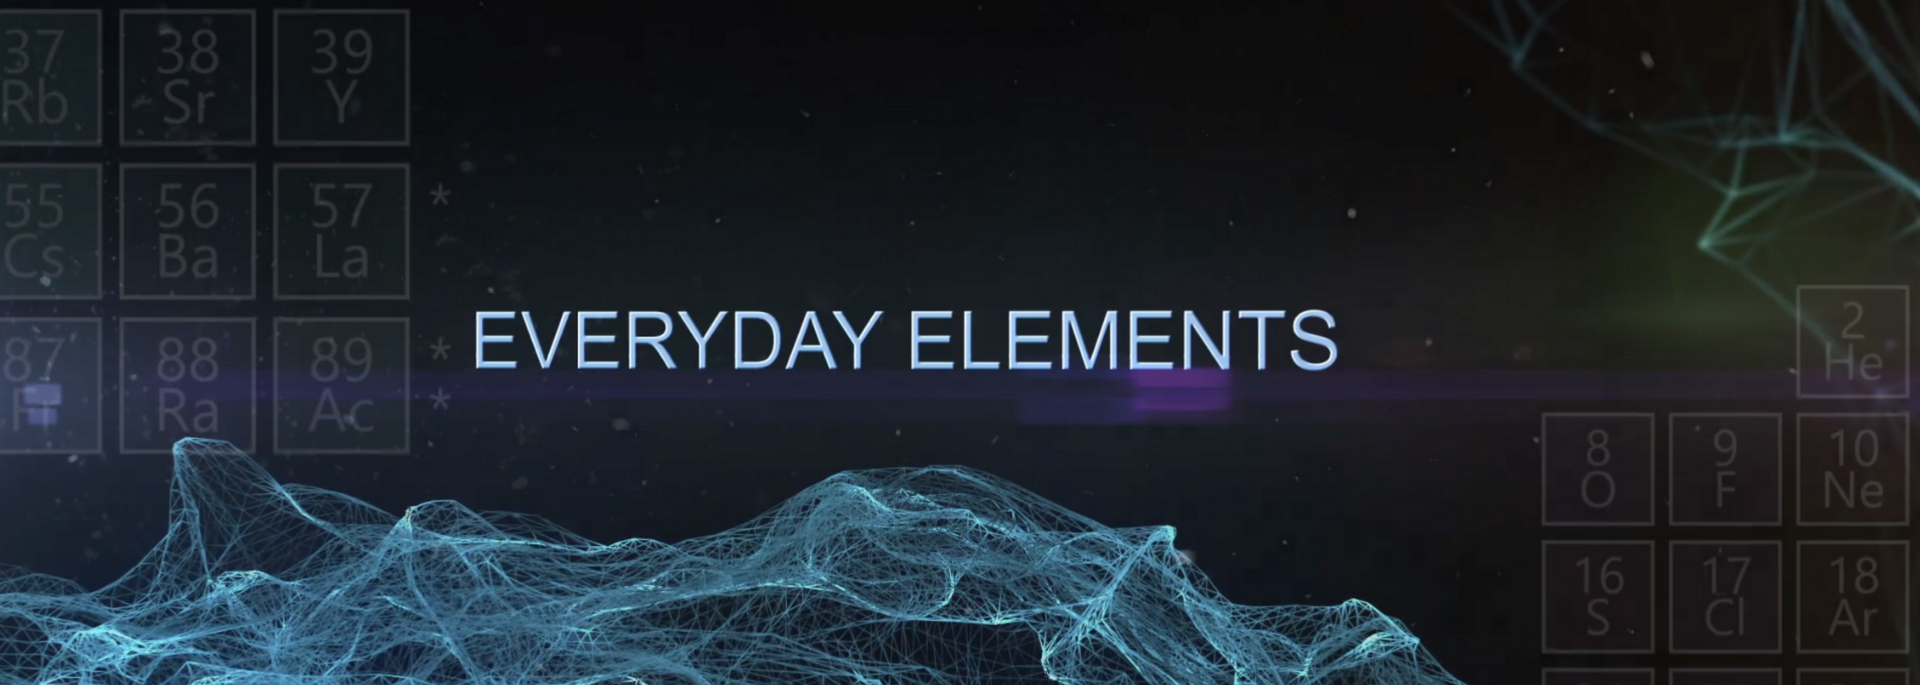 #EVERYDAY ELEMENTS channel